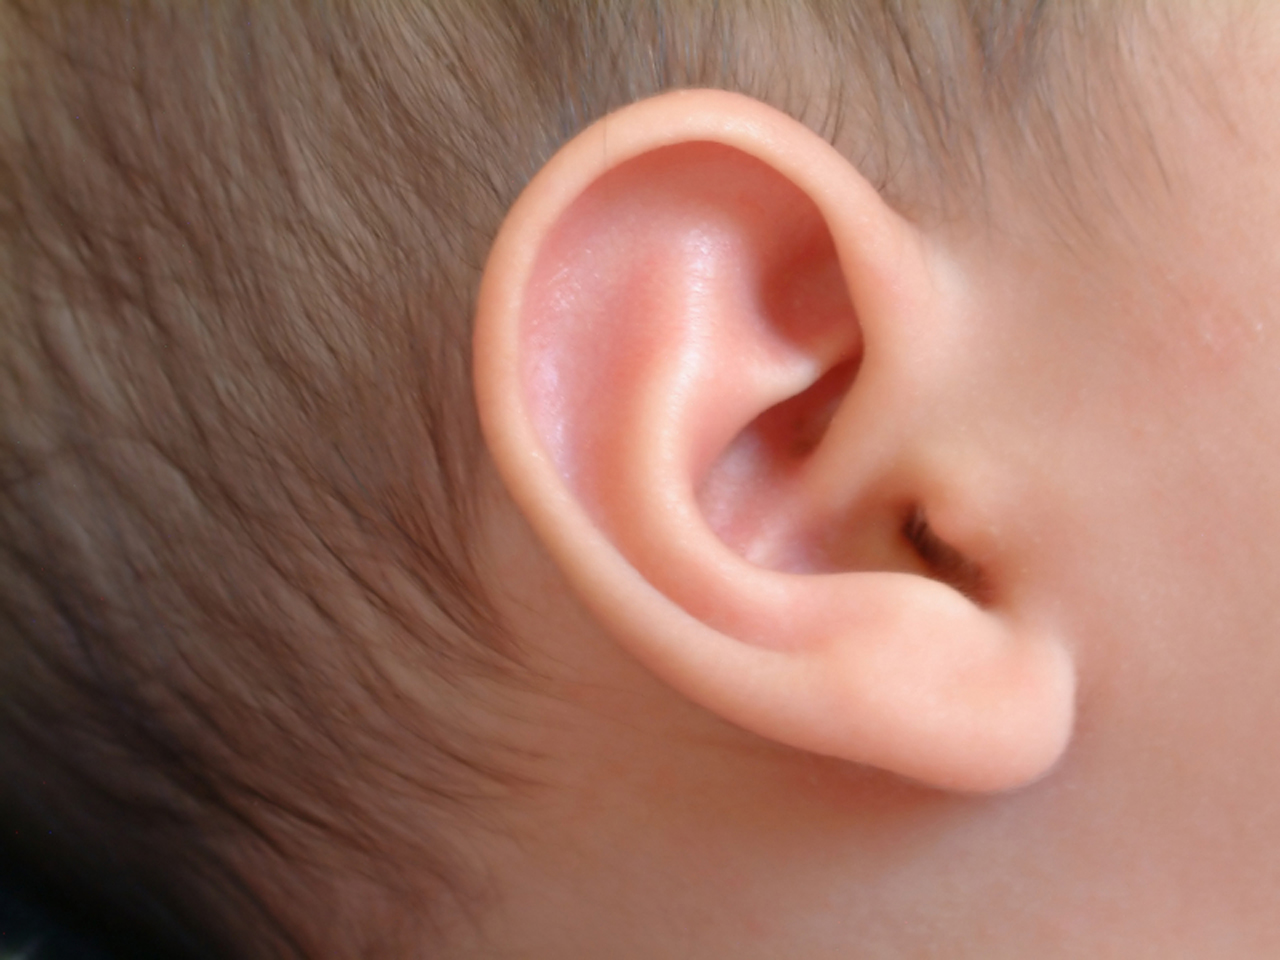 new guidelines suggest ear tubes aren 39 t necessary in all cases cbs news. Black Bedroom Furniture Sets. Home Design Ideas